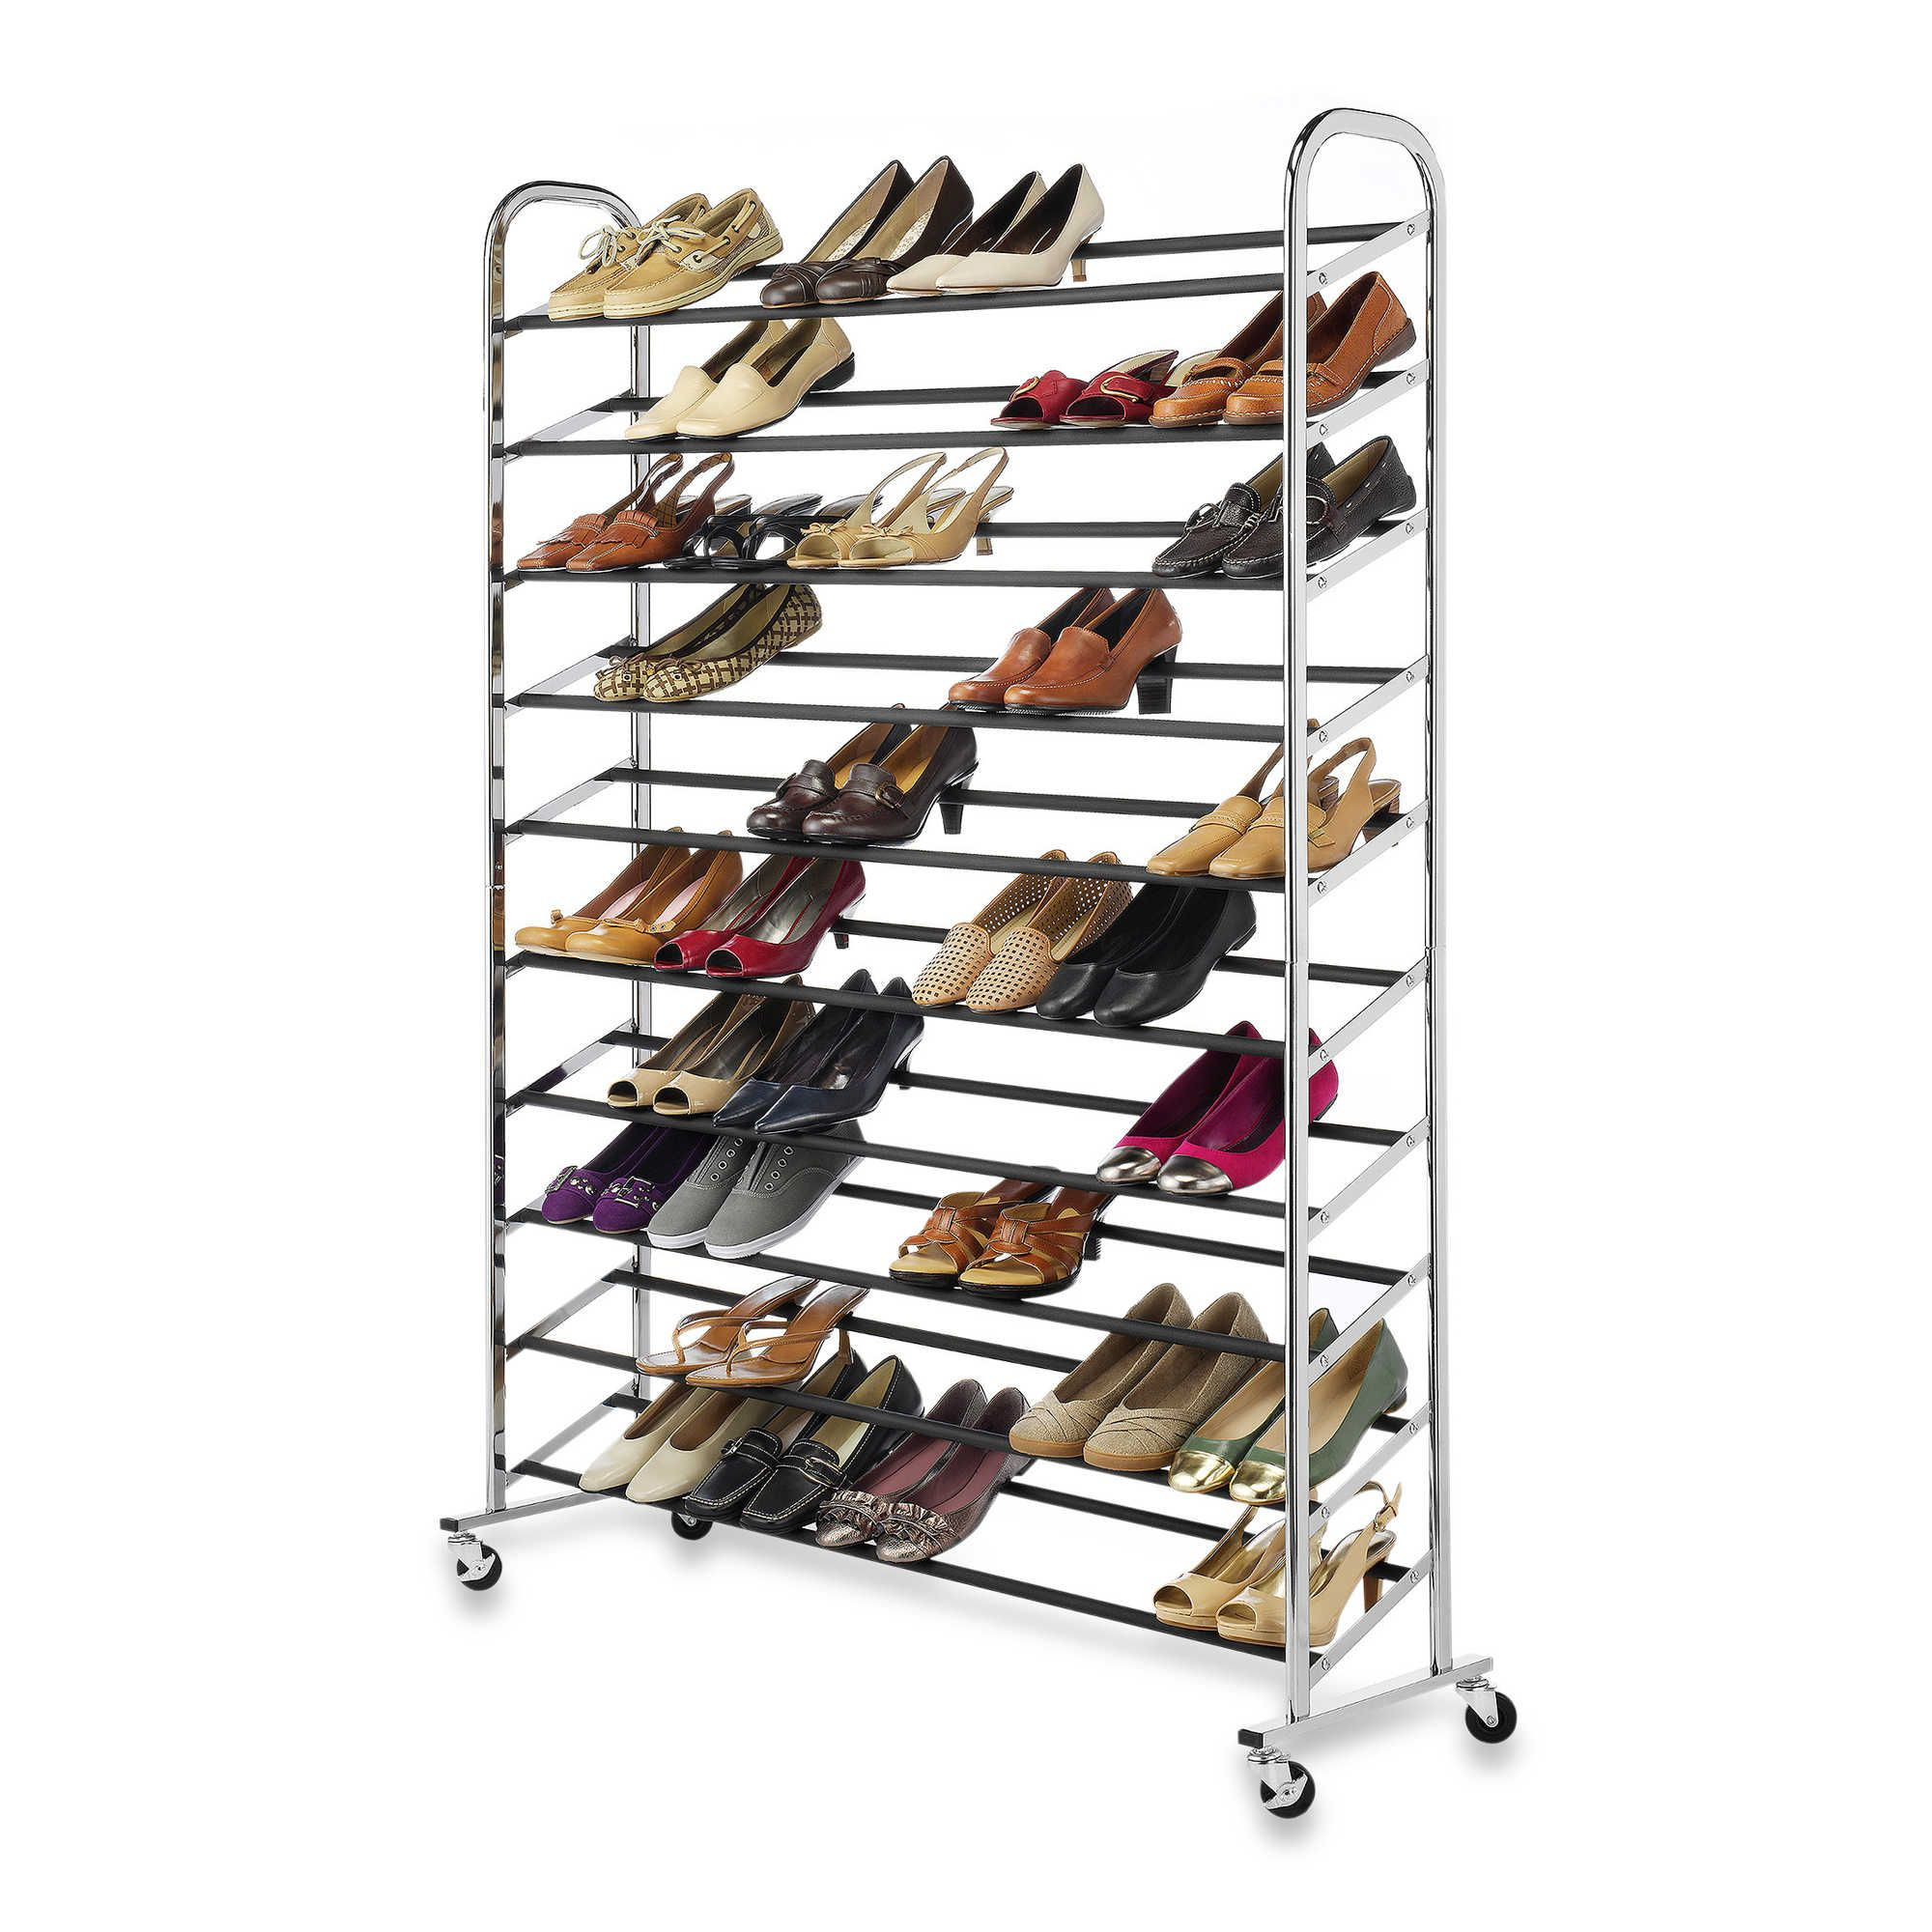 now you can keep all of your shoes neatly and securely organized with the rolling shoe rack this terrific durable chromed shoe tower will hold up to 60